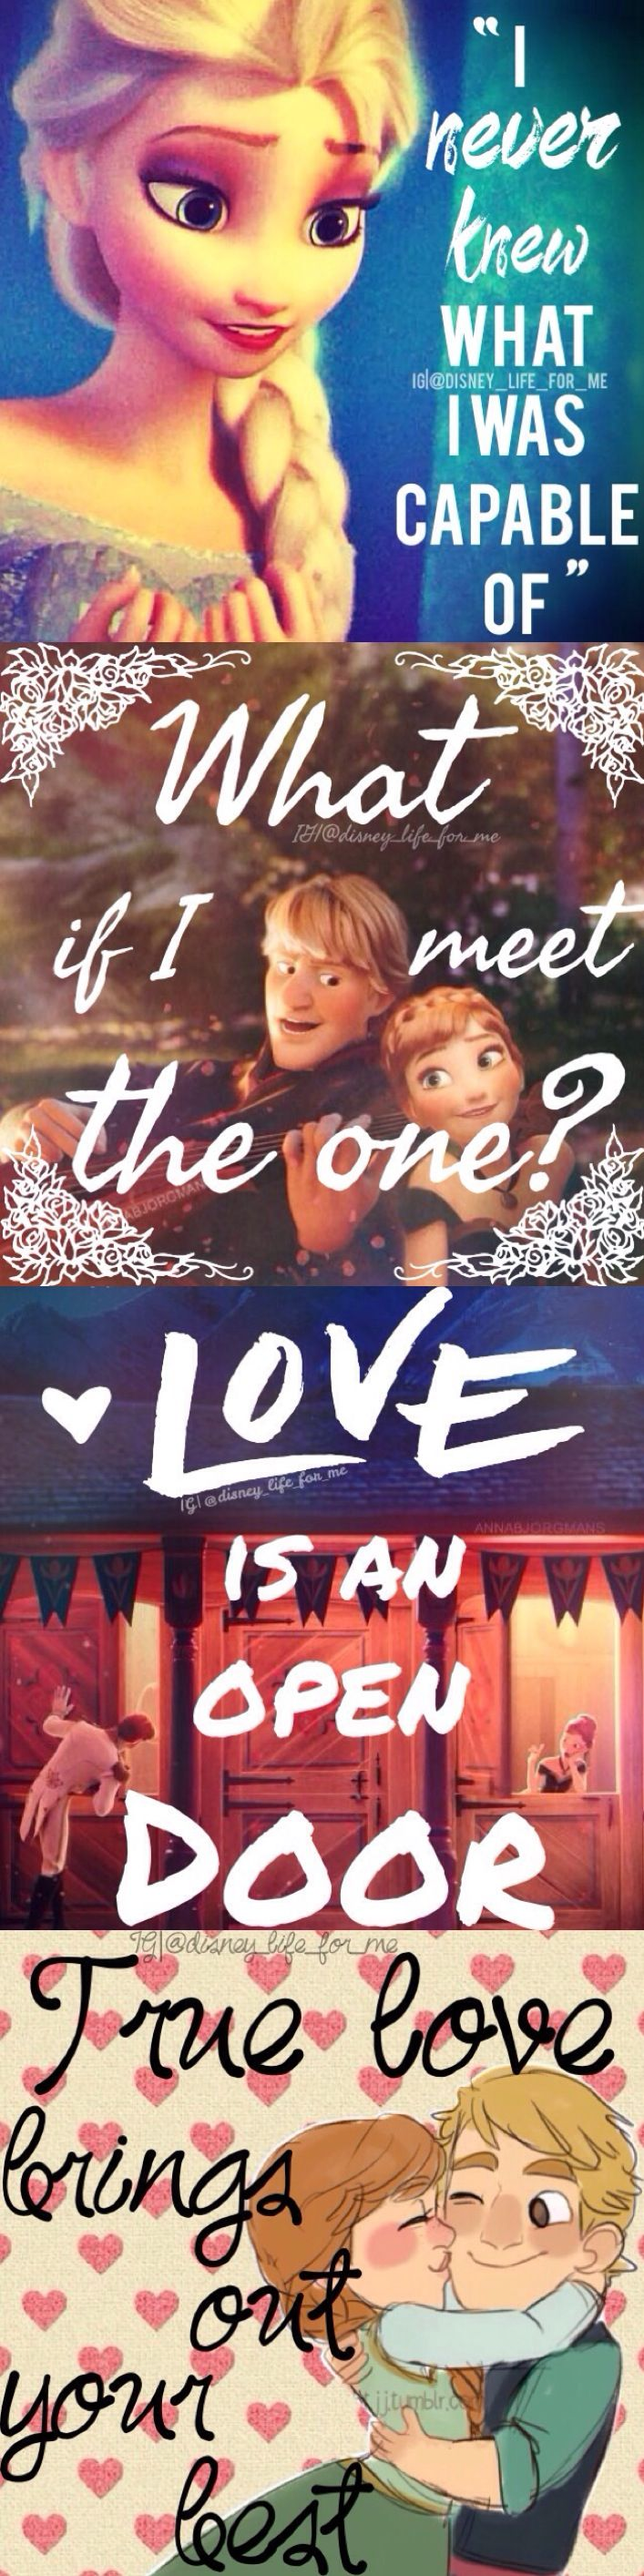 It's that time again! Mass edit posting  IG|@disney_life_for_me frozen edits. Elsa, Anna, Kristoff, Hans, Sven, Olaf